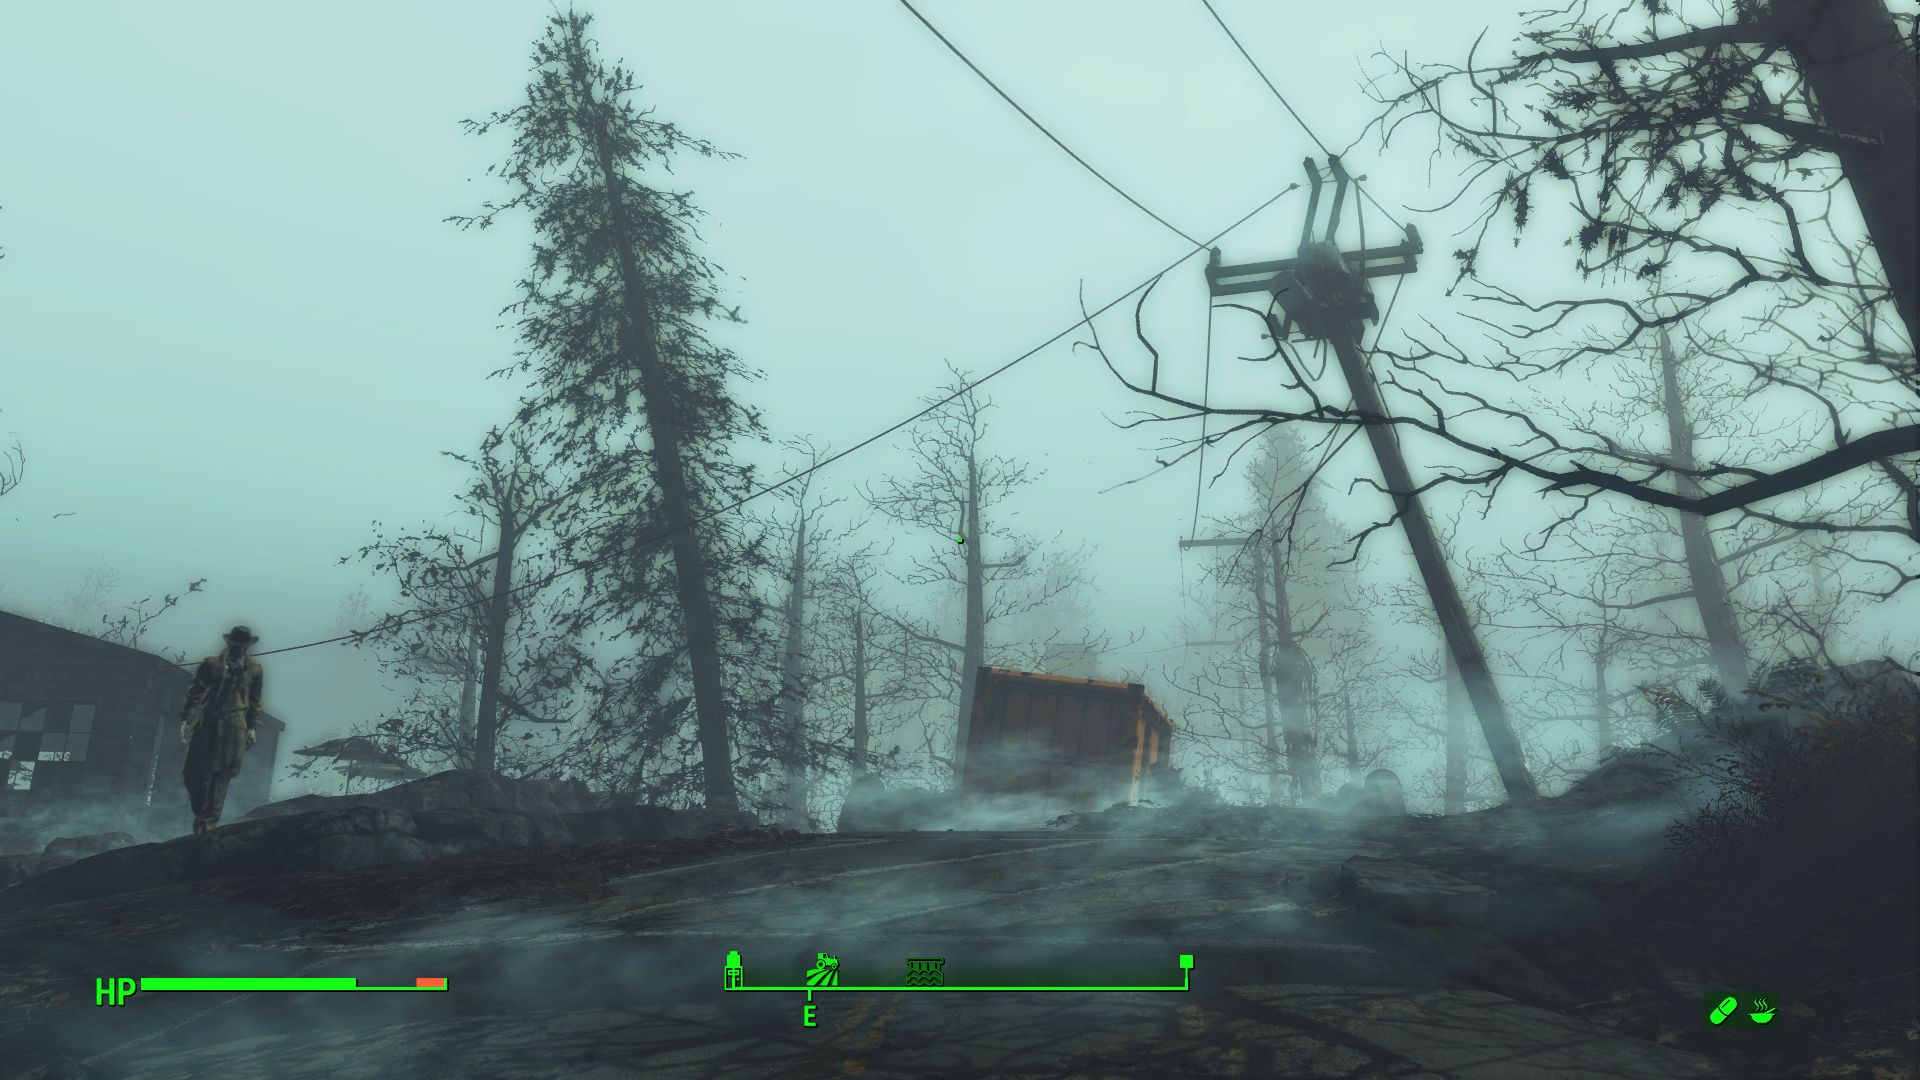 generator 2 fallout 4 far harbor finding a hidden area (cranberry island) fallout 4 fuse box generator at n-0.co